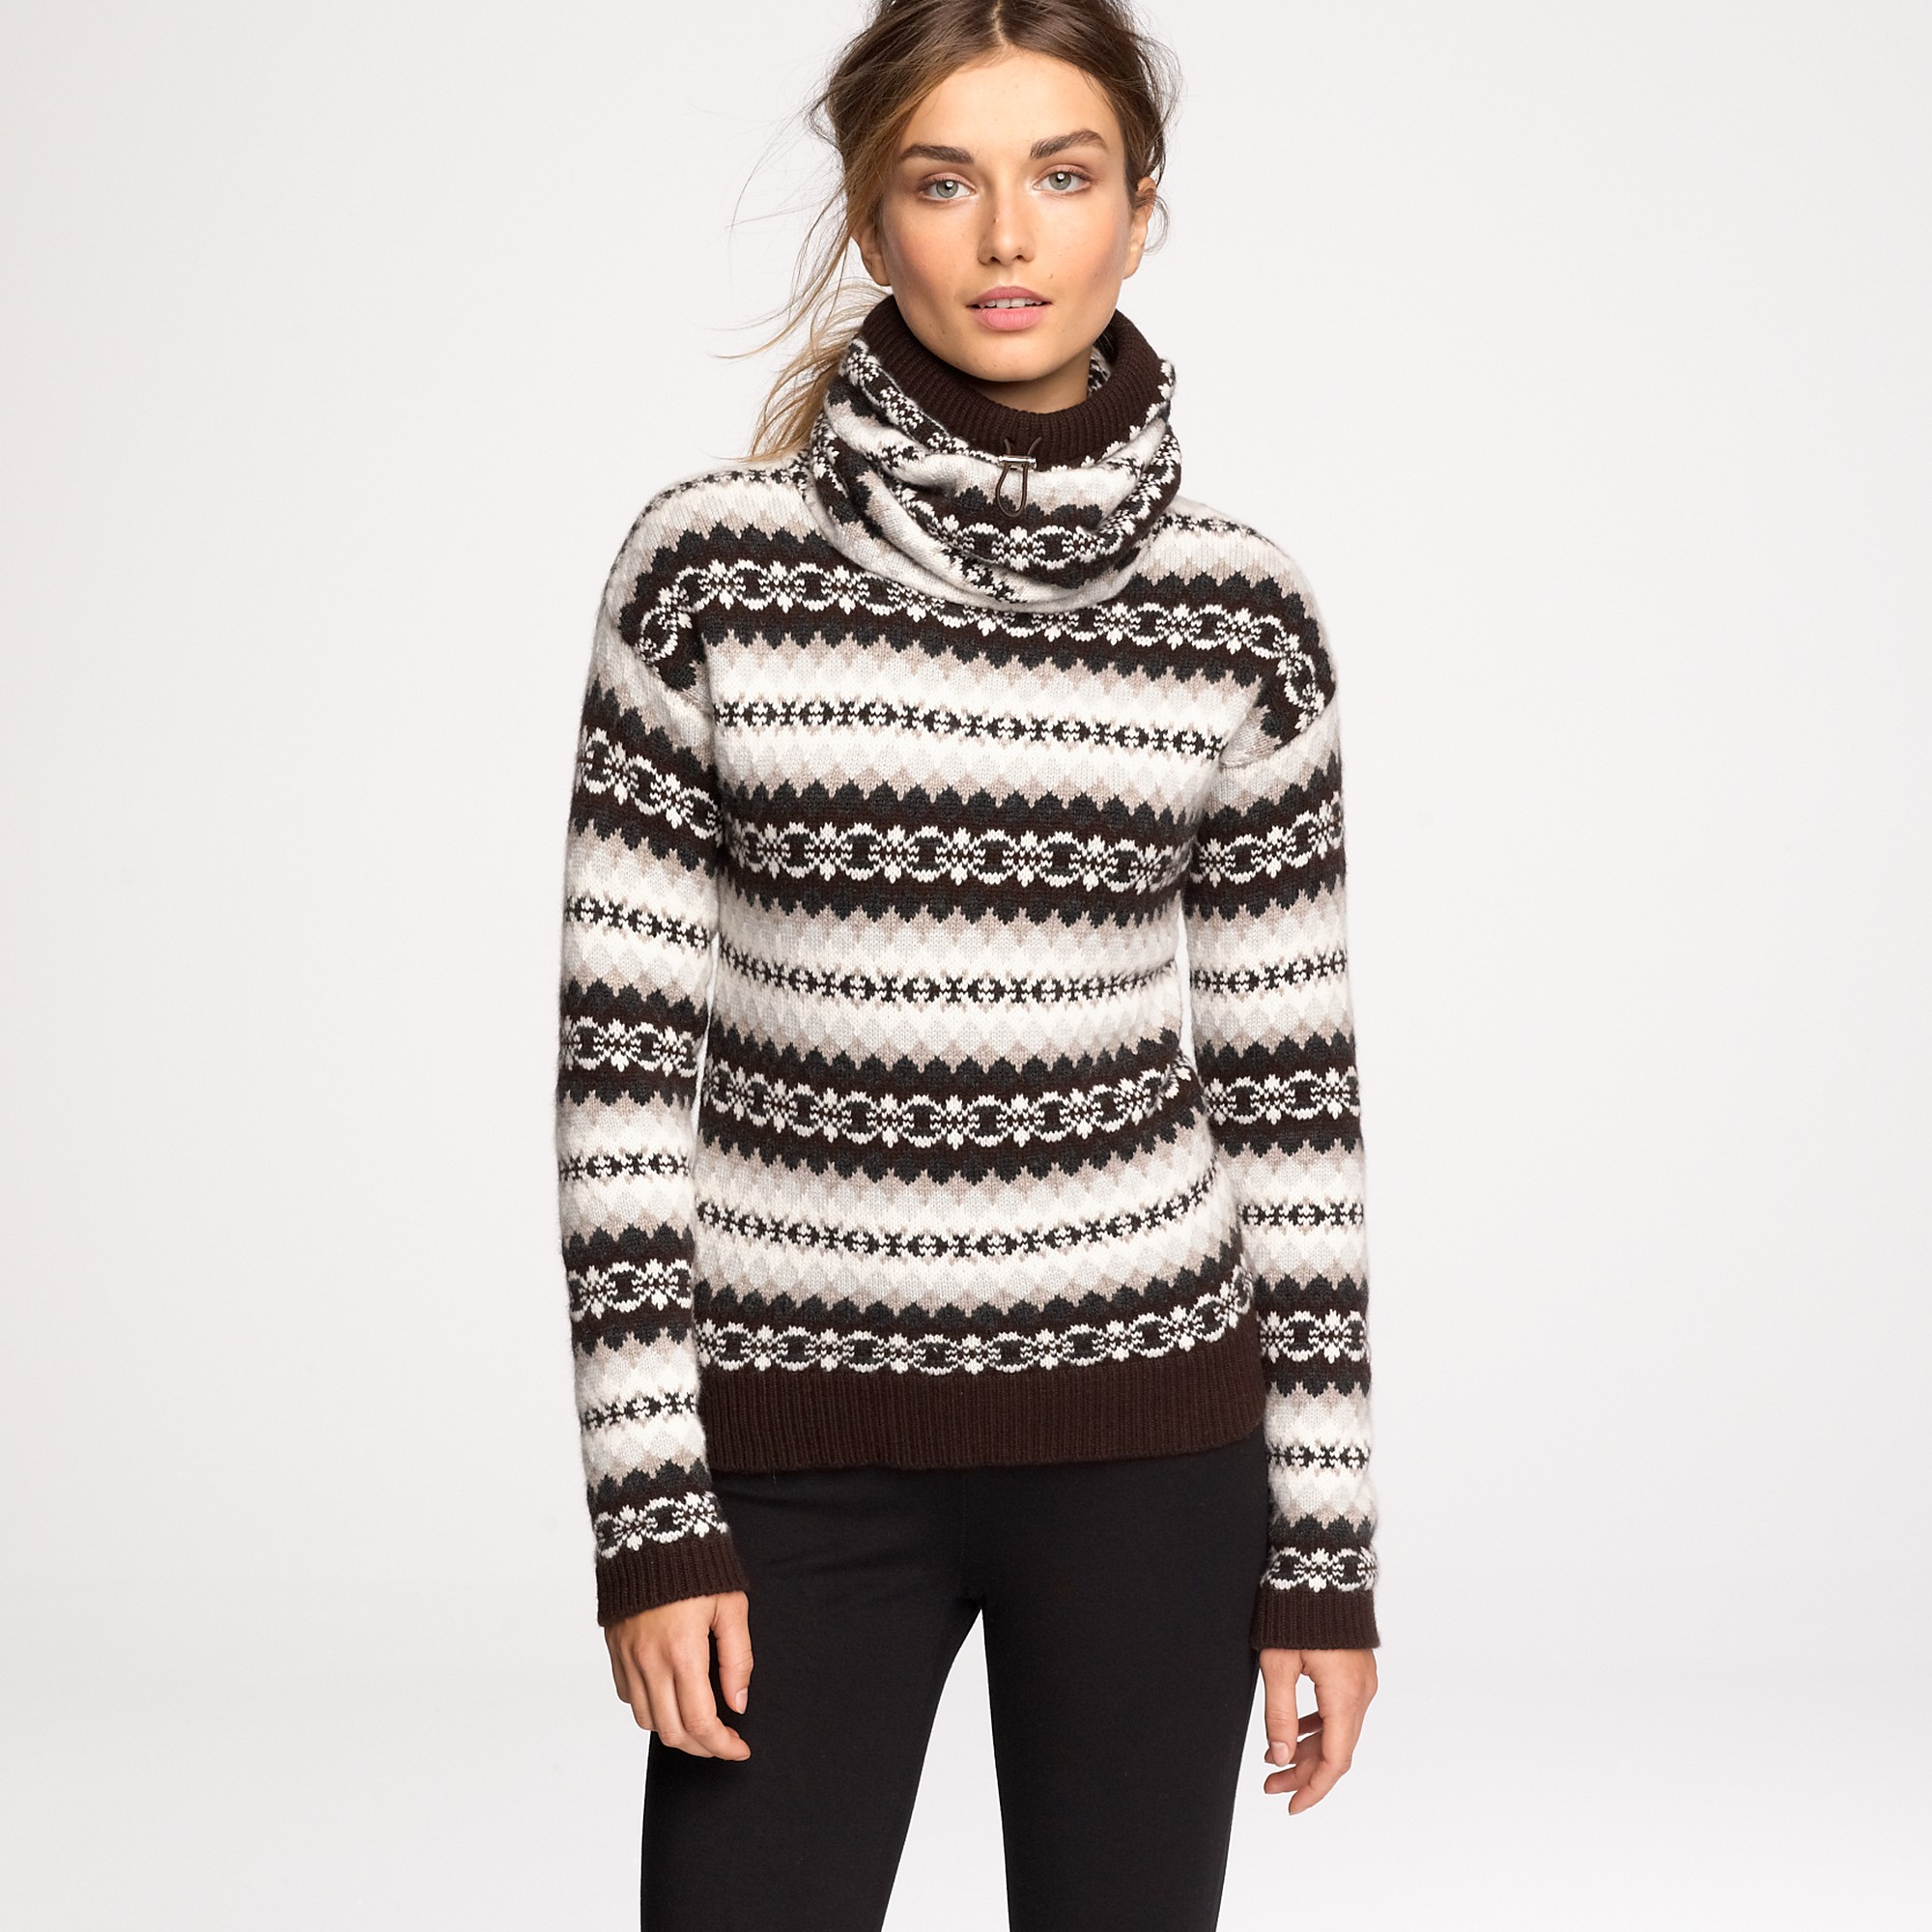 J.crew Authier® Cashmere Ski Sweater in Brown | Lyst